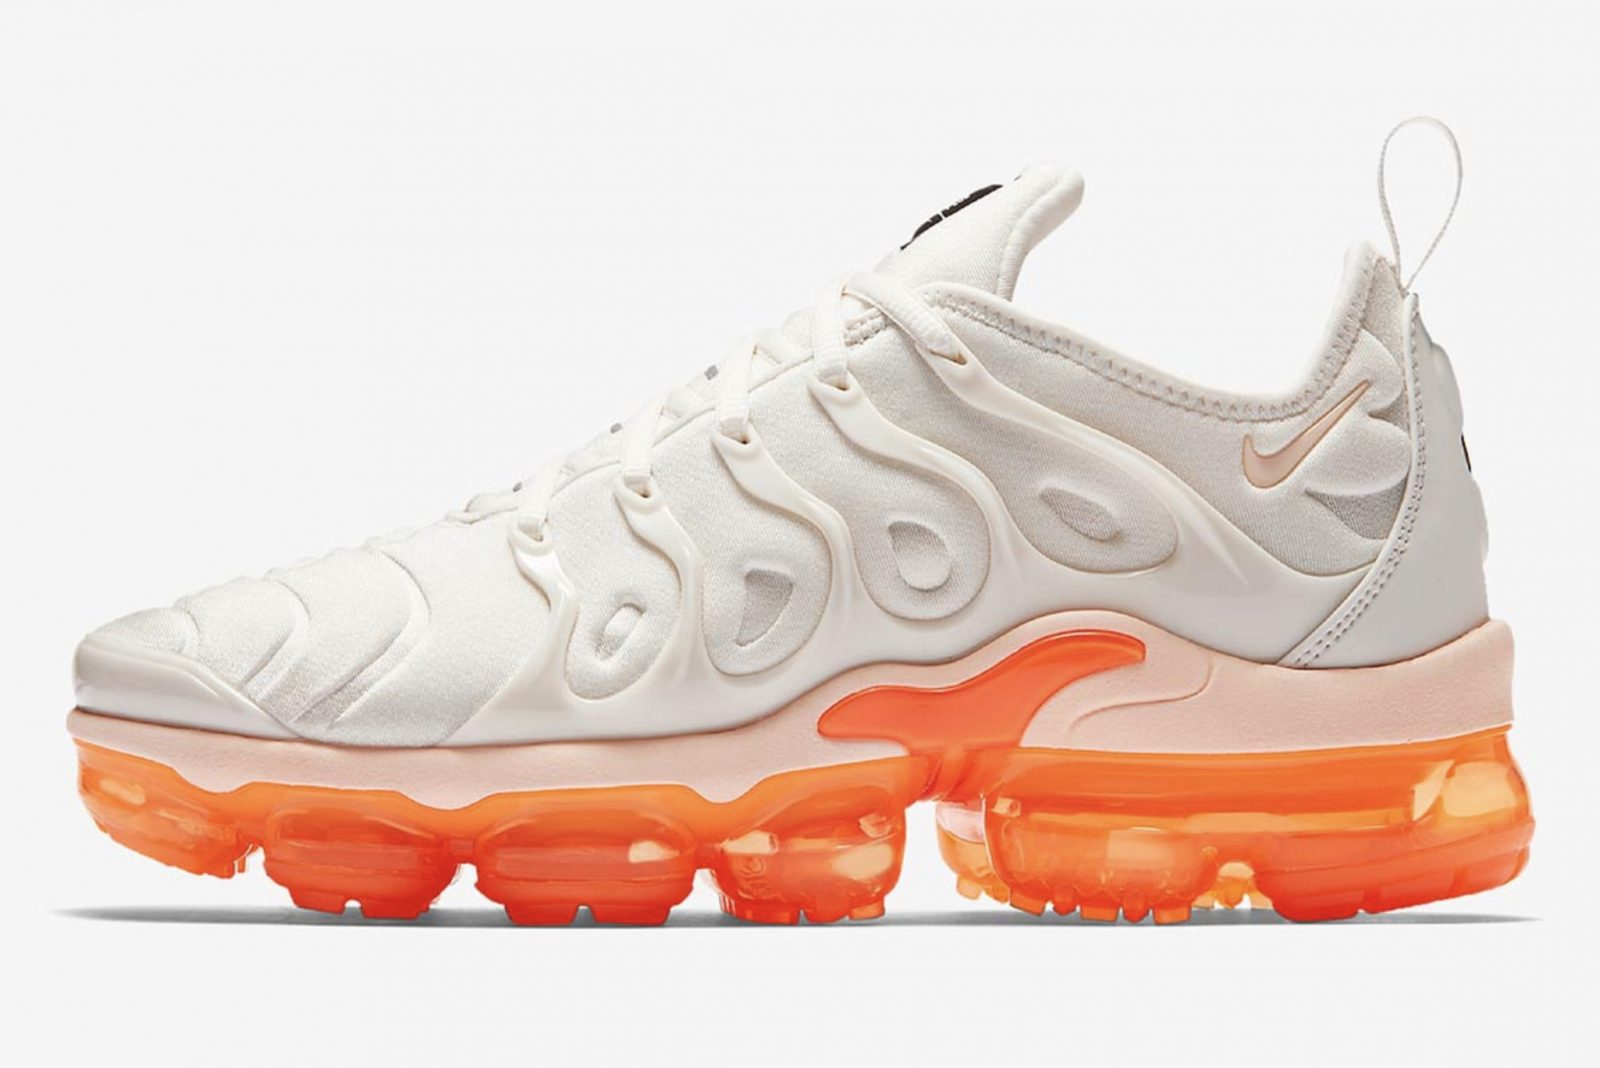 747b806ae79 Nike Air VaporMax Plus Wmns Creamsicle